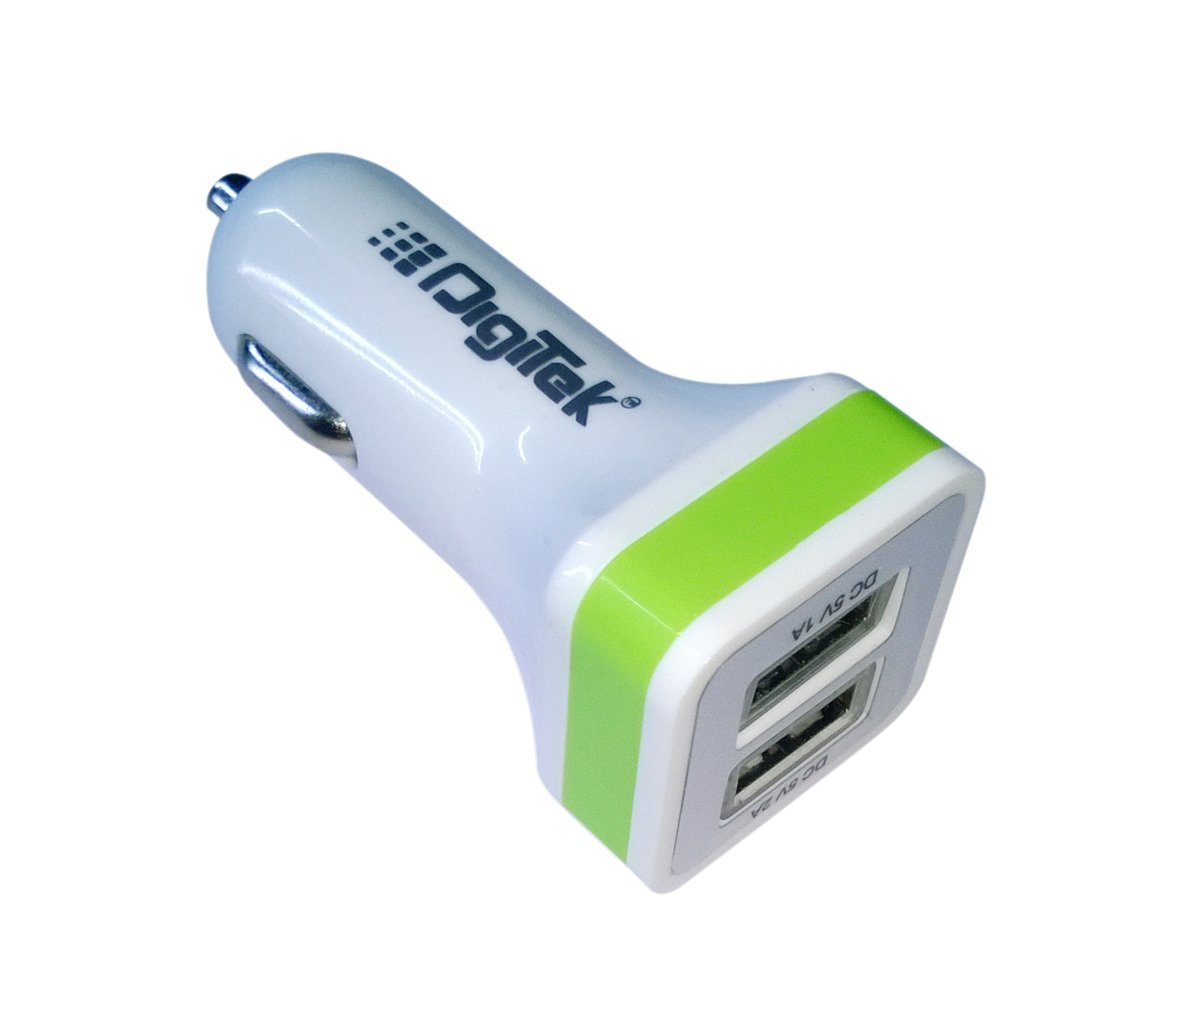 Digitek 009 Dual USB 2.1 A DMC Car Charger